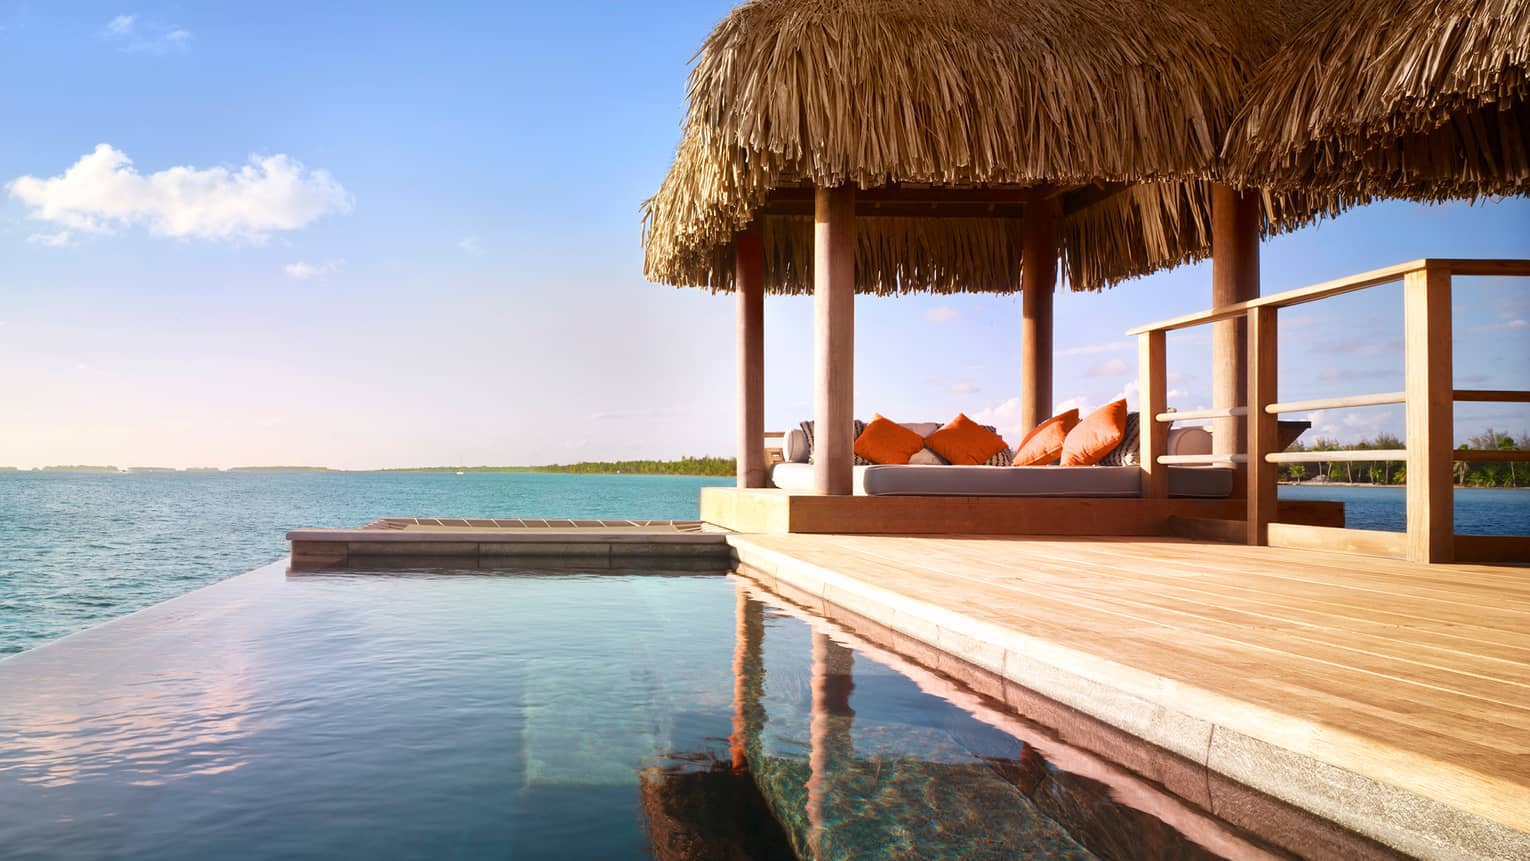 Overwater bungalow suite patio with infinity pool over ocean